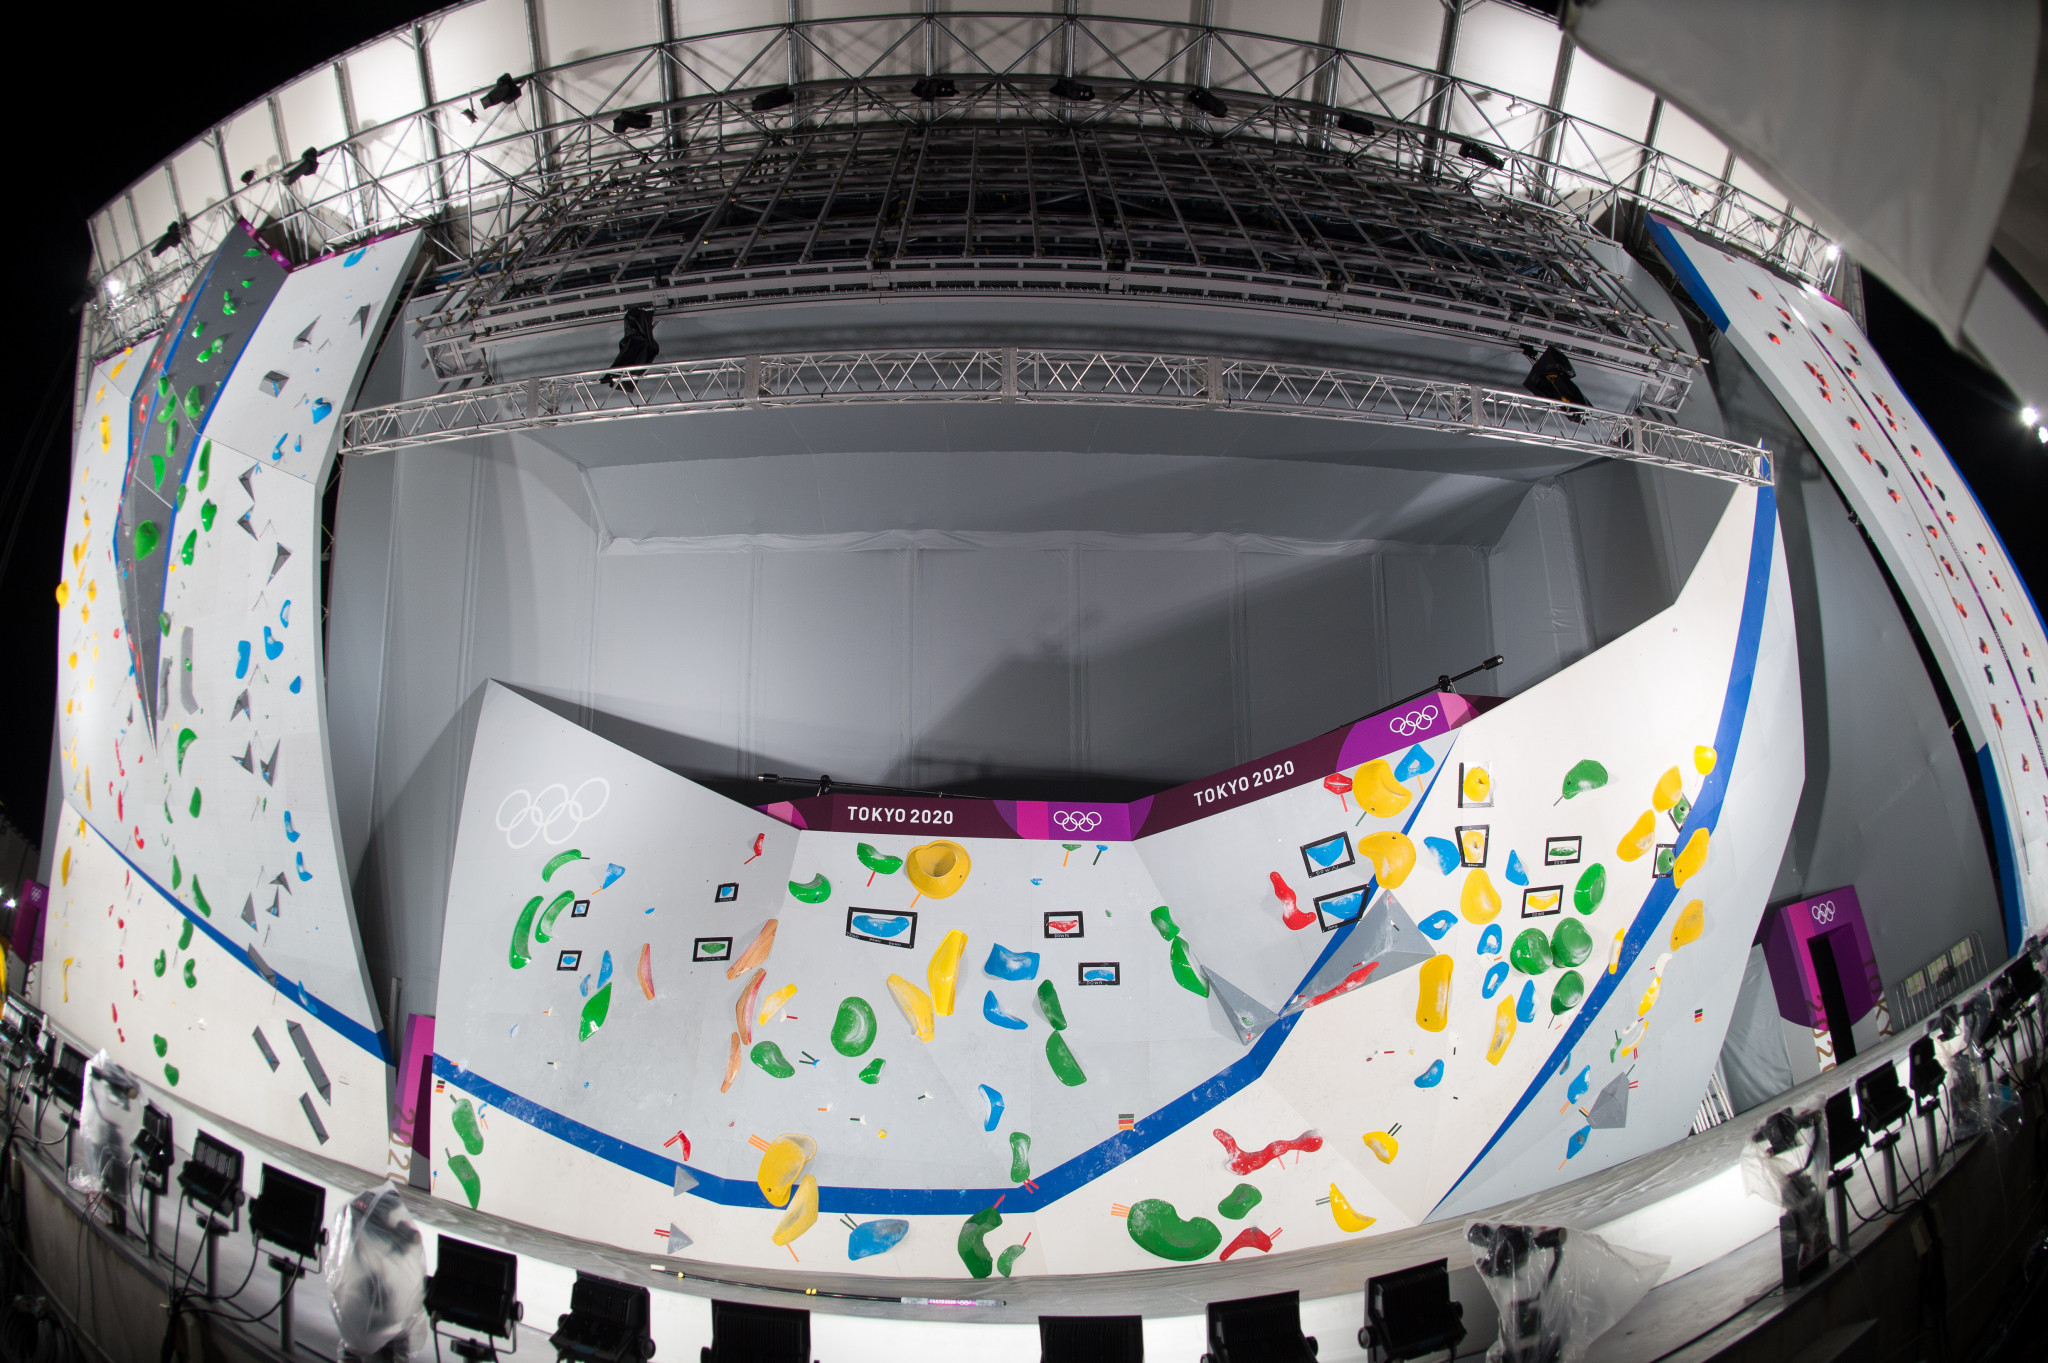 IFSC President praises passion of sport climbing community as Olympic debut nears